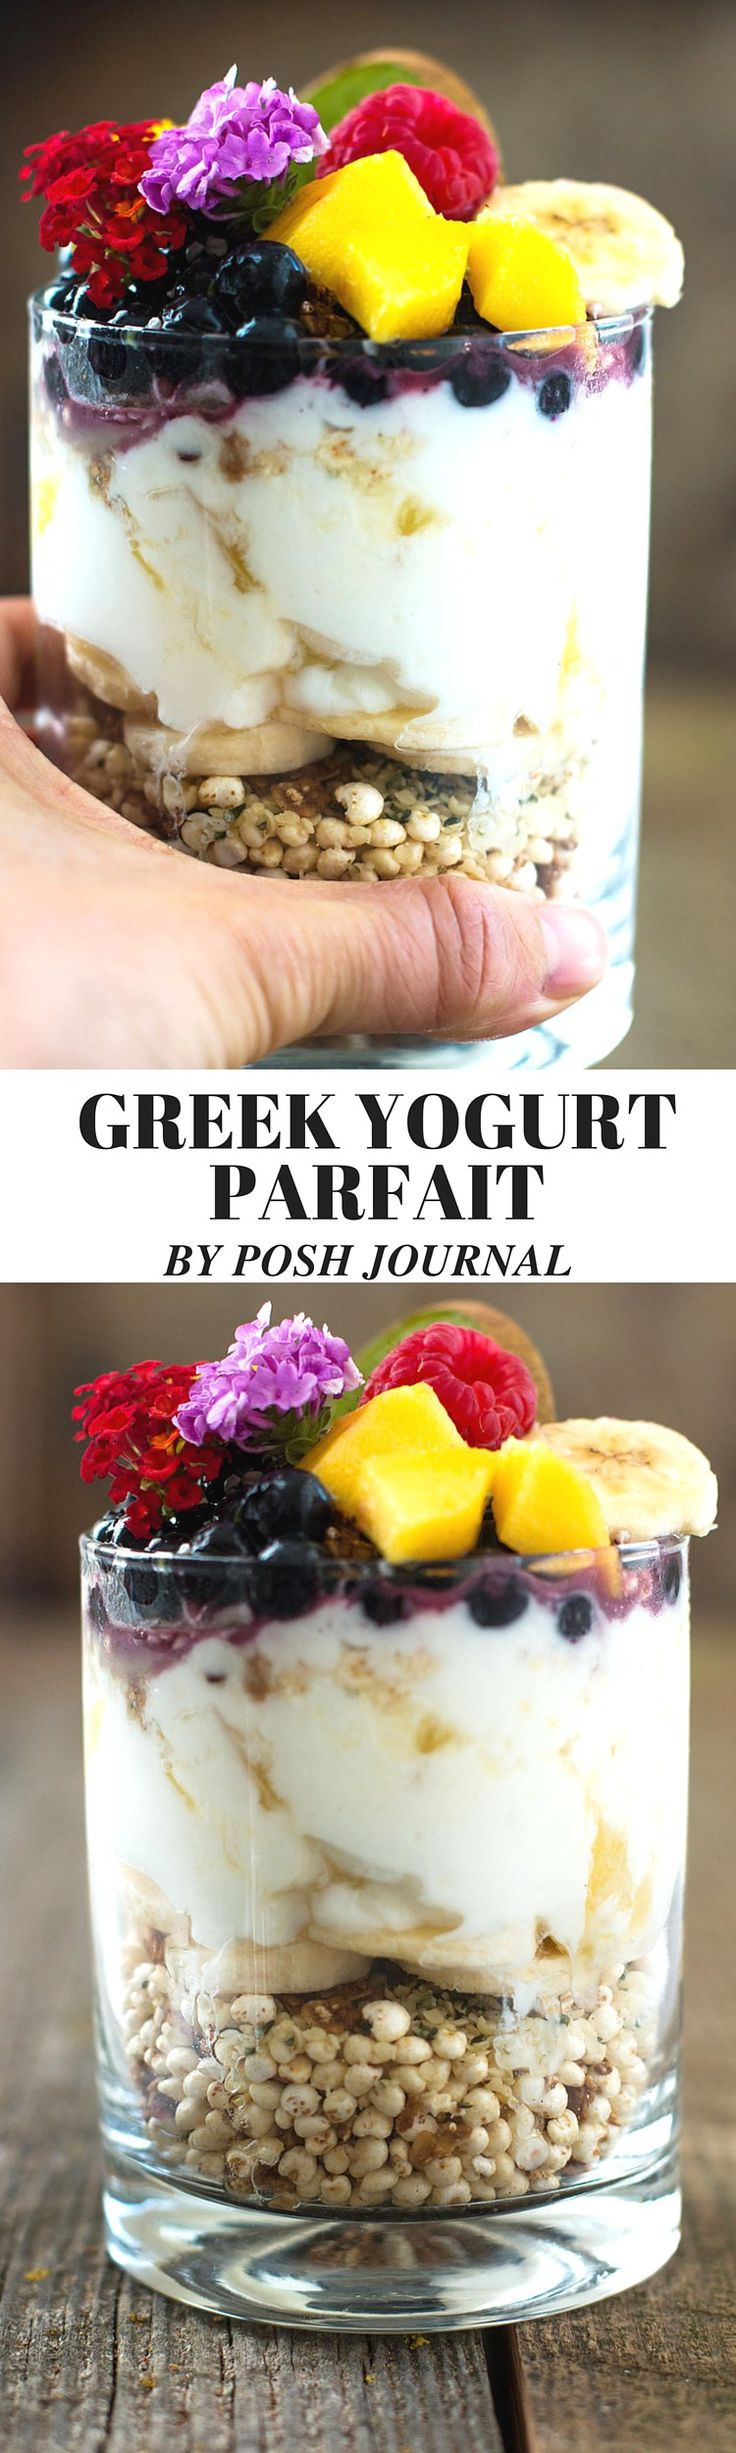 Staying Healthy as Family + Easy Fruit Yogurt Parfait Recipe - Posh Journal #ad